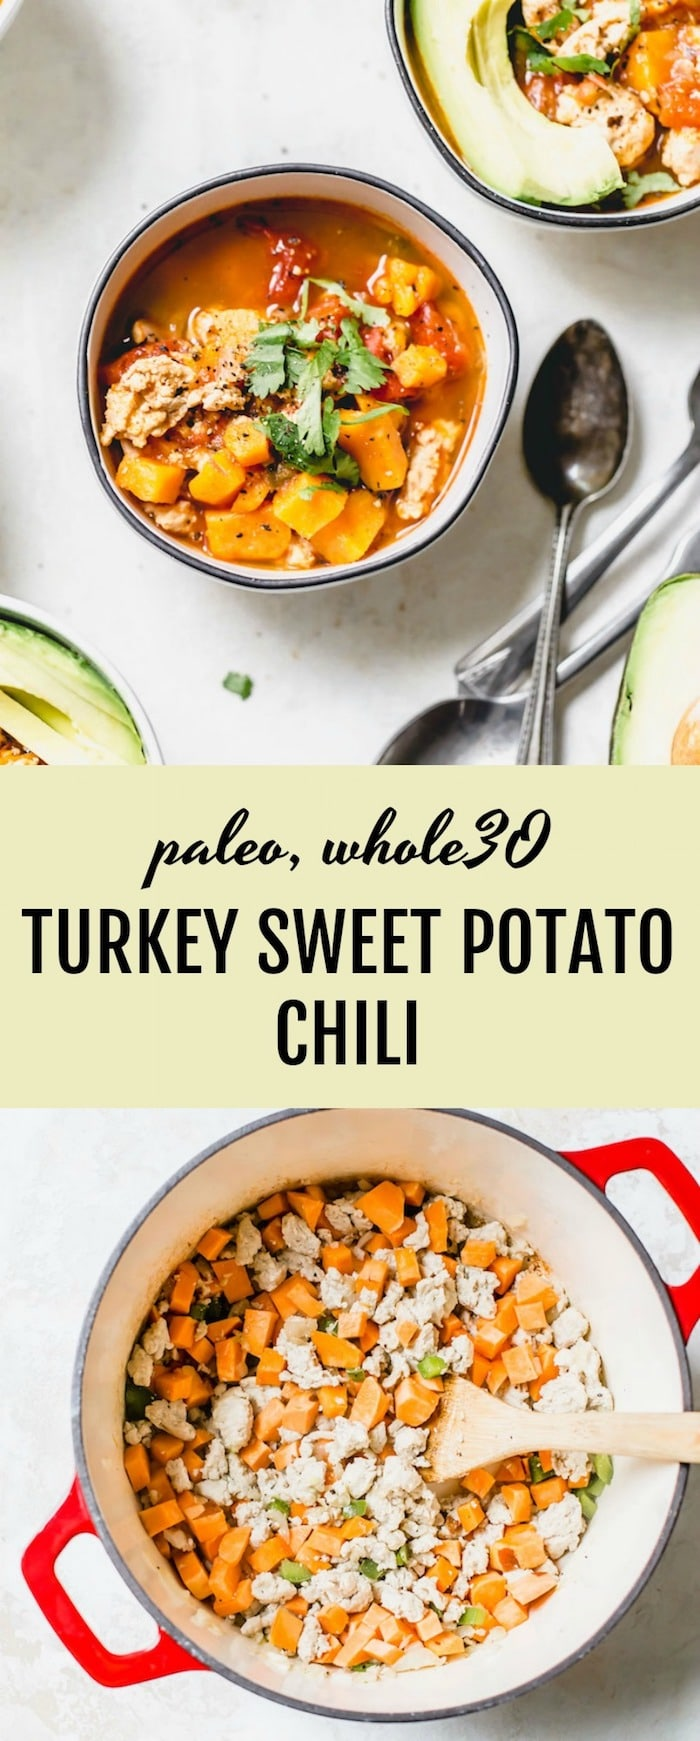 Turkey Sweet Potato Chili - a healthy 30 minute #whole30 meal that uses sweet potato in place of beans | thealmondeater.com